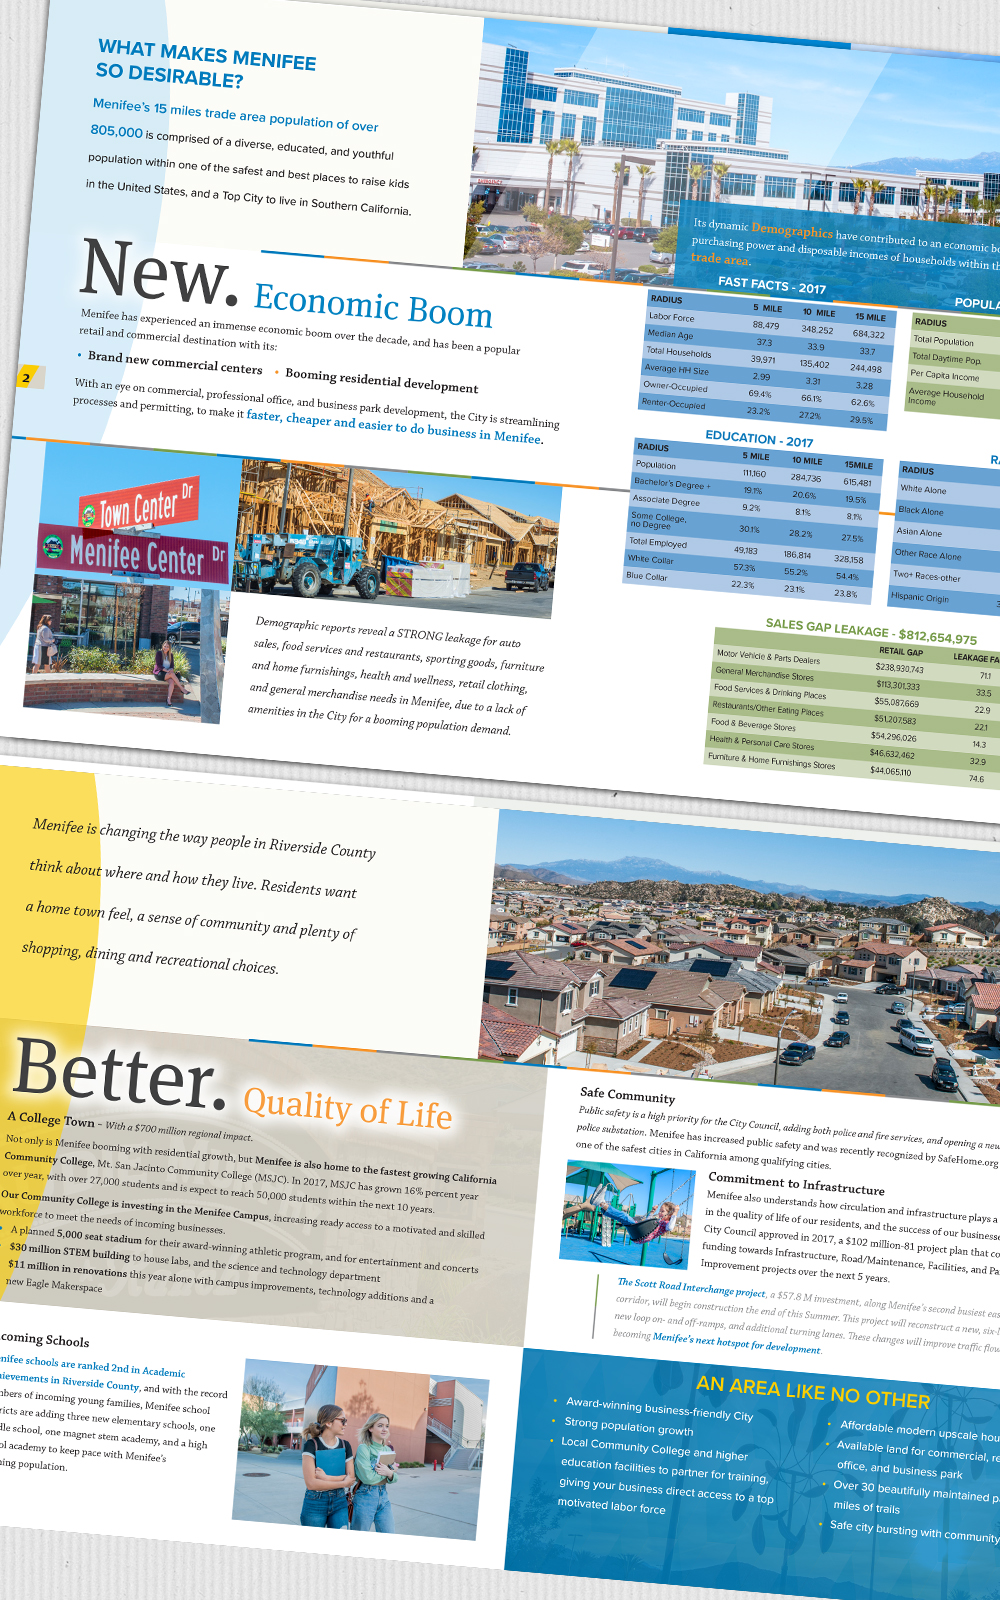 City of Menifee Business, Retail and Quality of Life